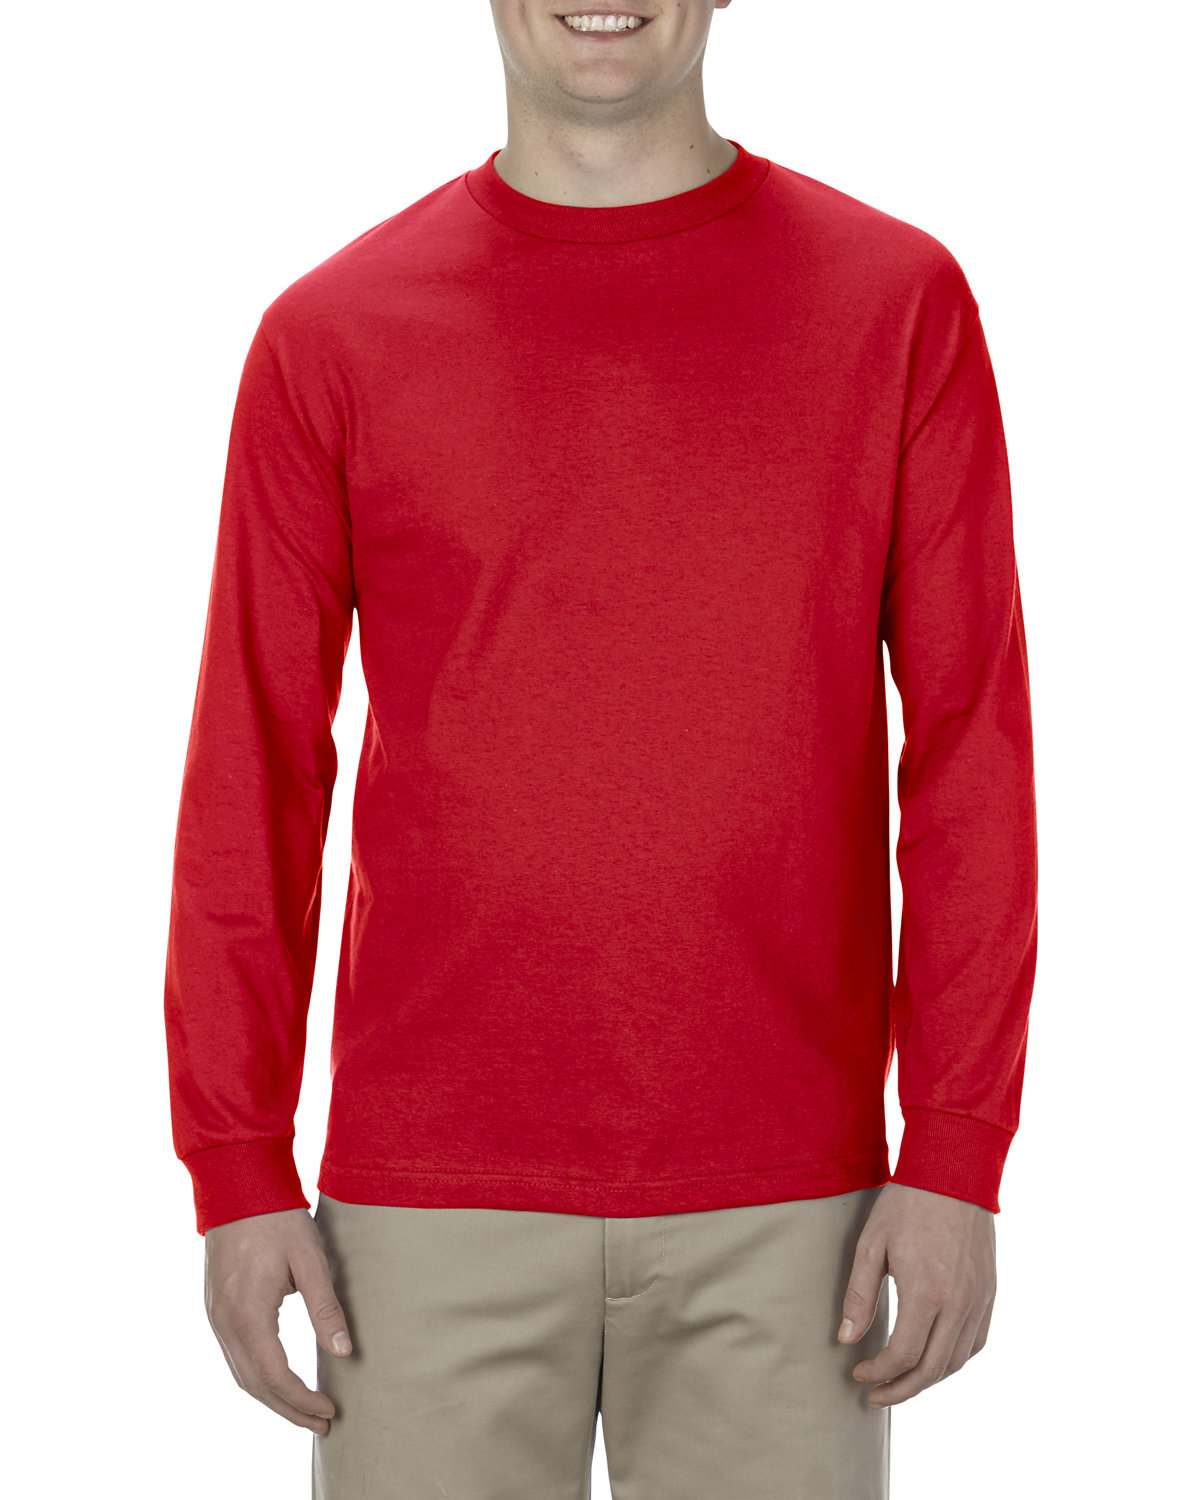 Alstyle Adult 6.0 oz., 100% Cotton Long-Sleeve T-Shirt RED